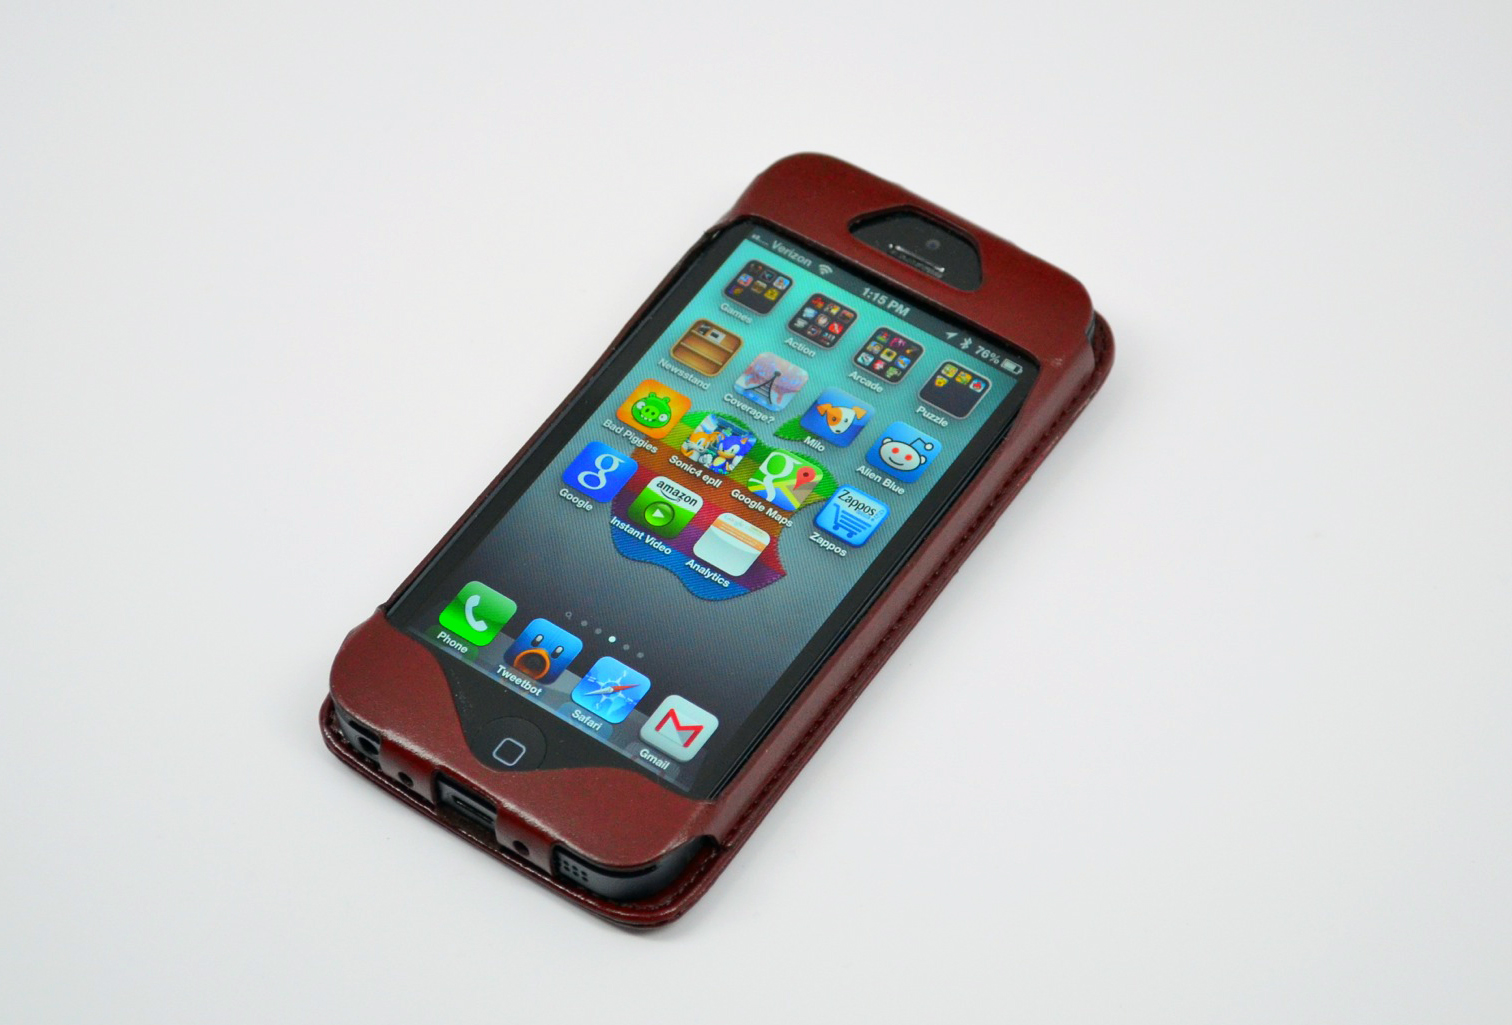 Mapi Tion Iphone 5 Leather Wallet Case Review 1